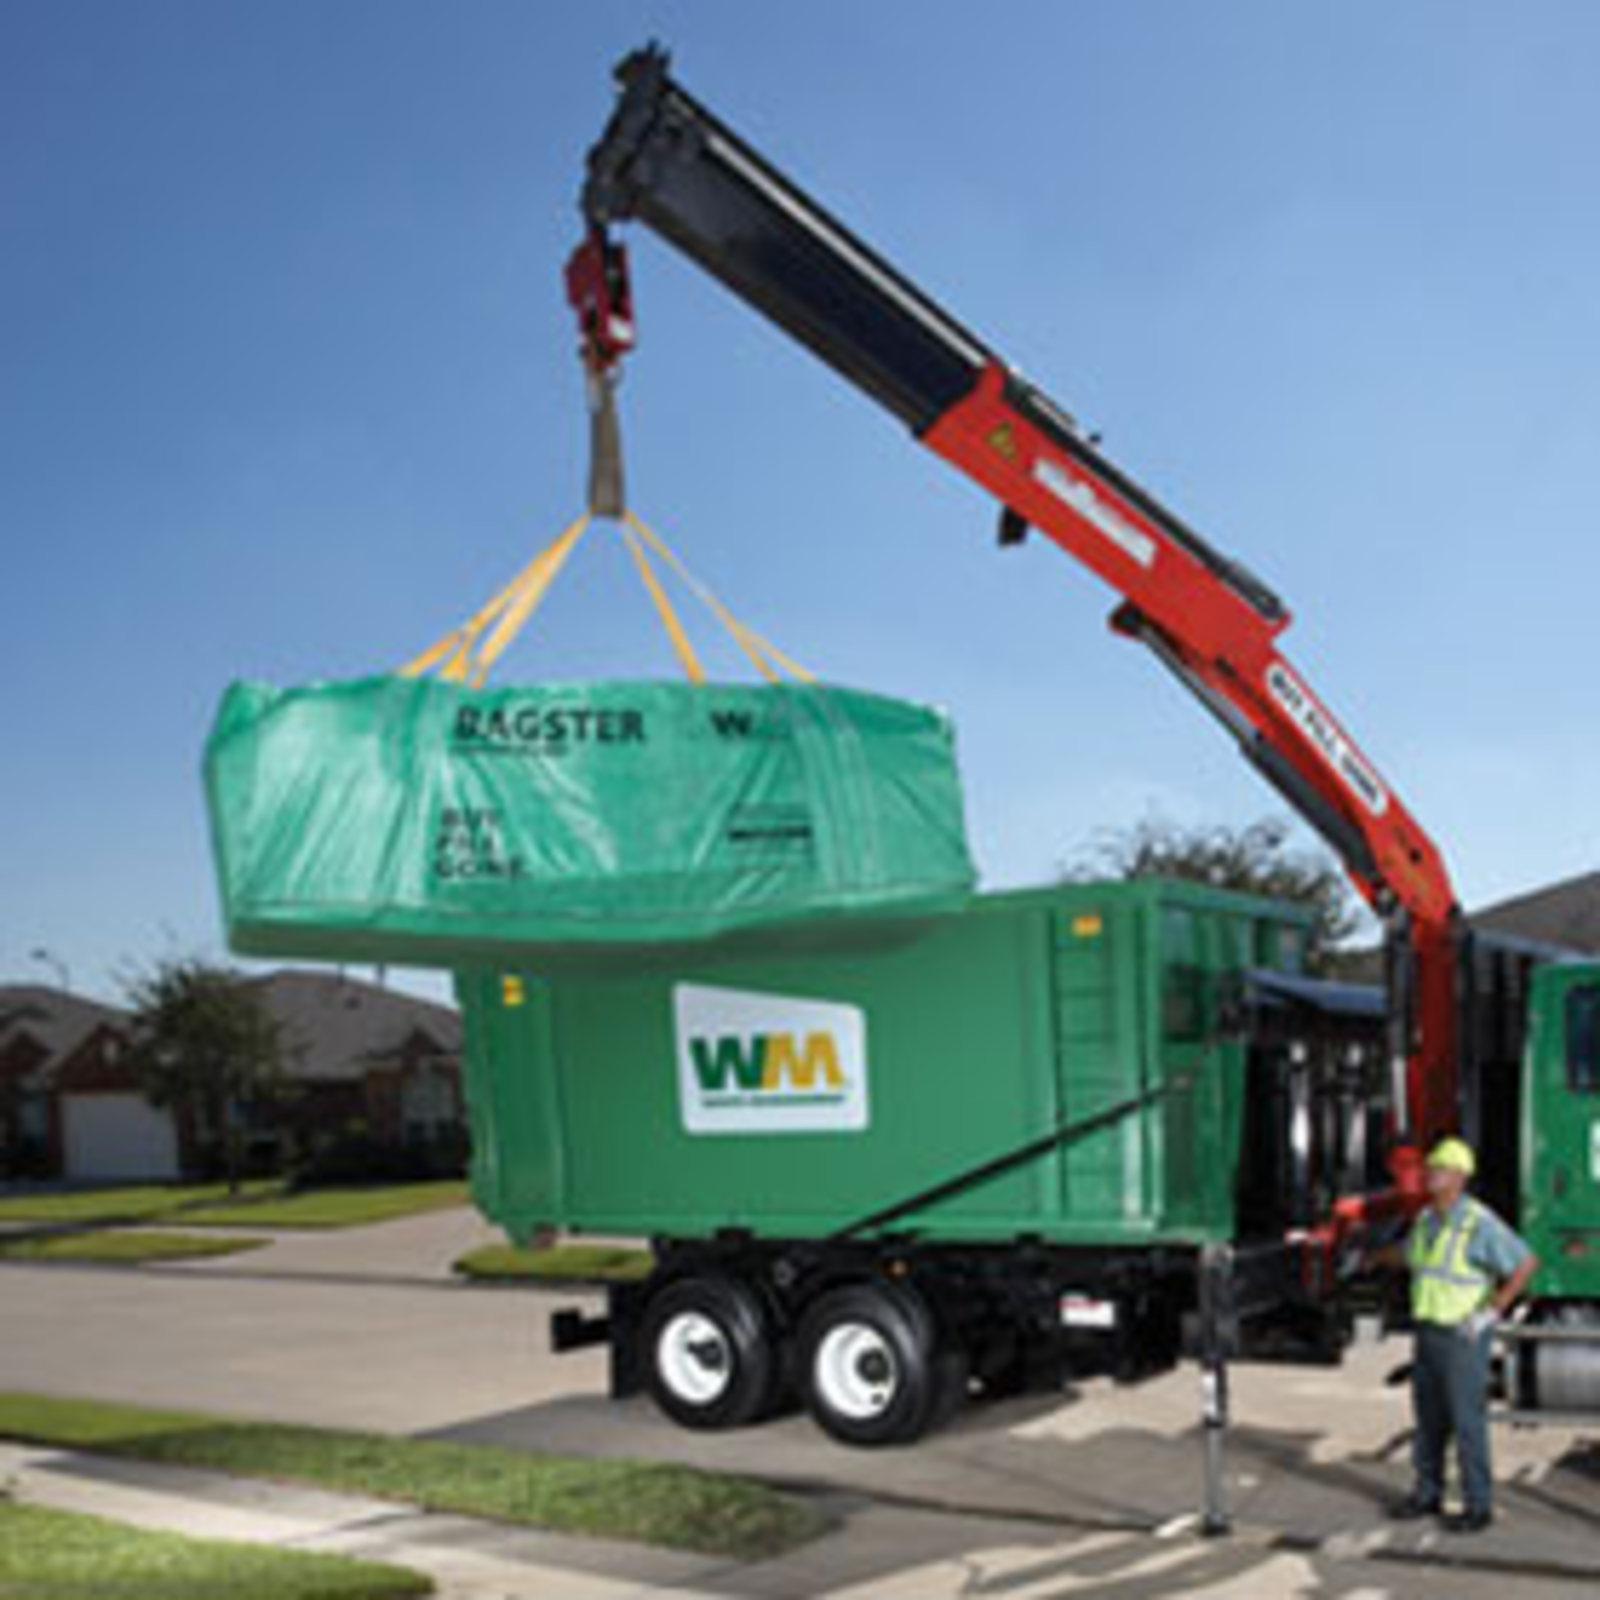 Dumpster Rental in Los Angeles. Dumpsters for Homeowners and Contractors. Call for a dumpster today.